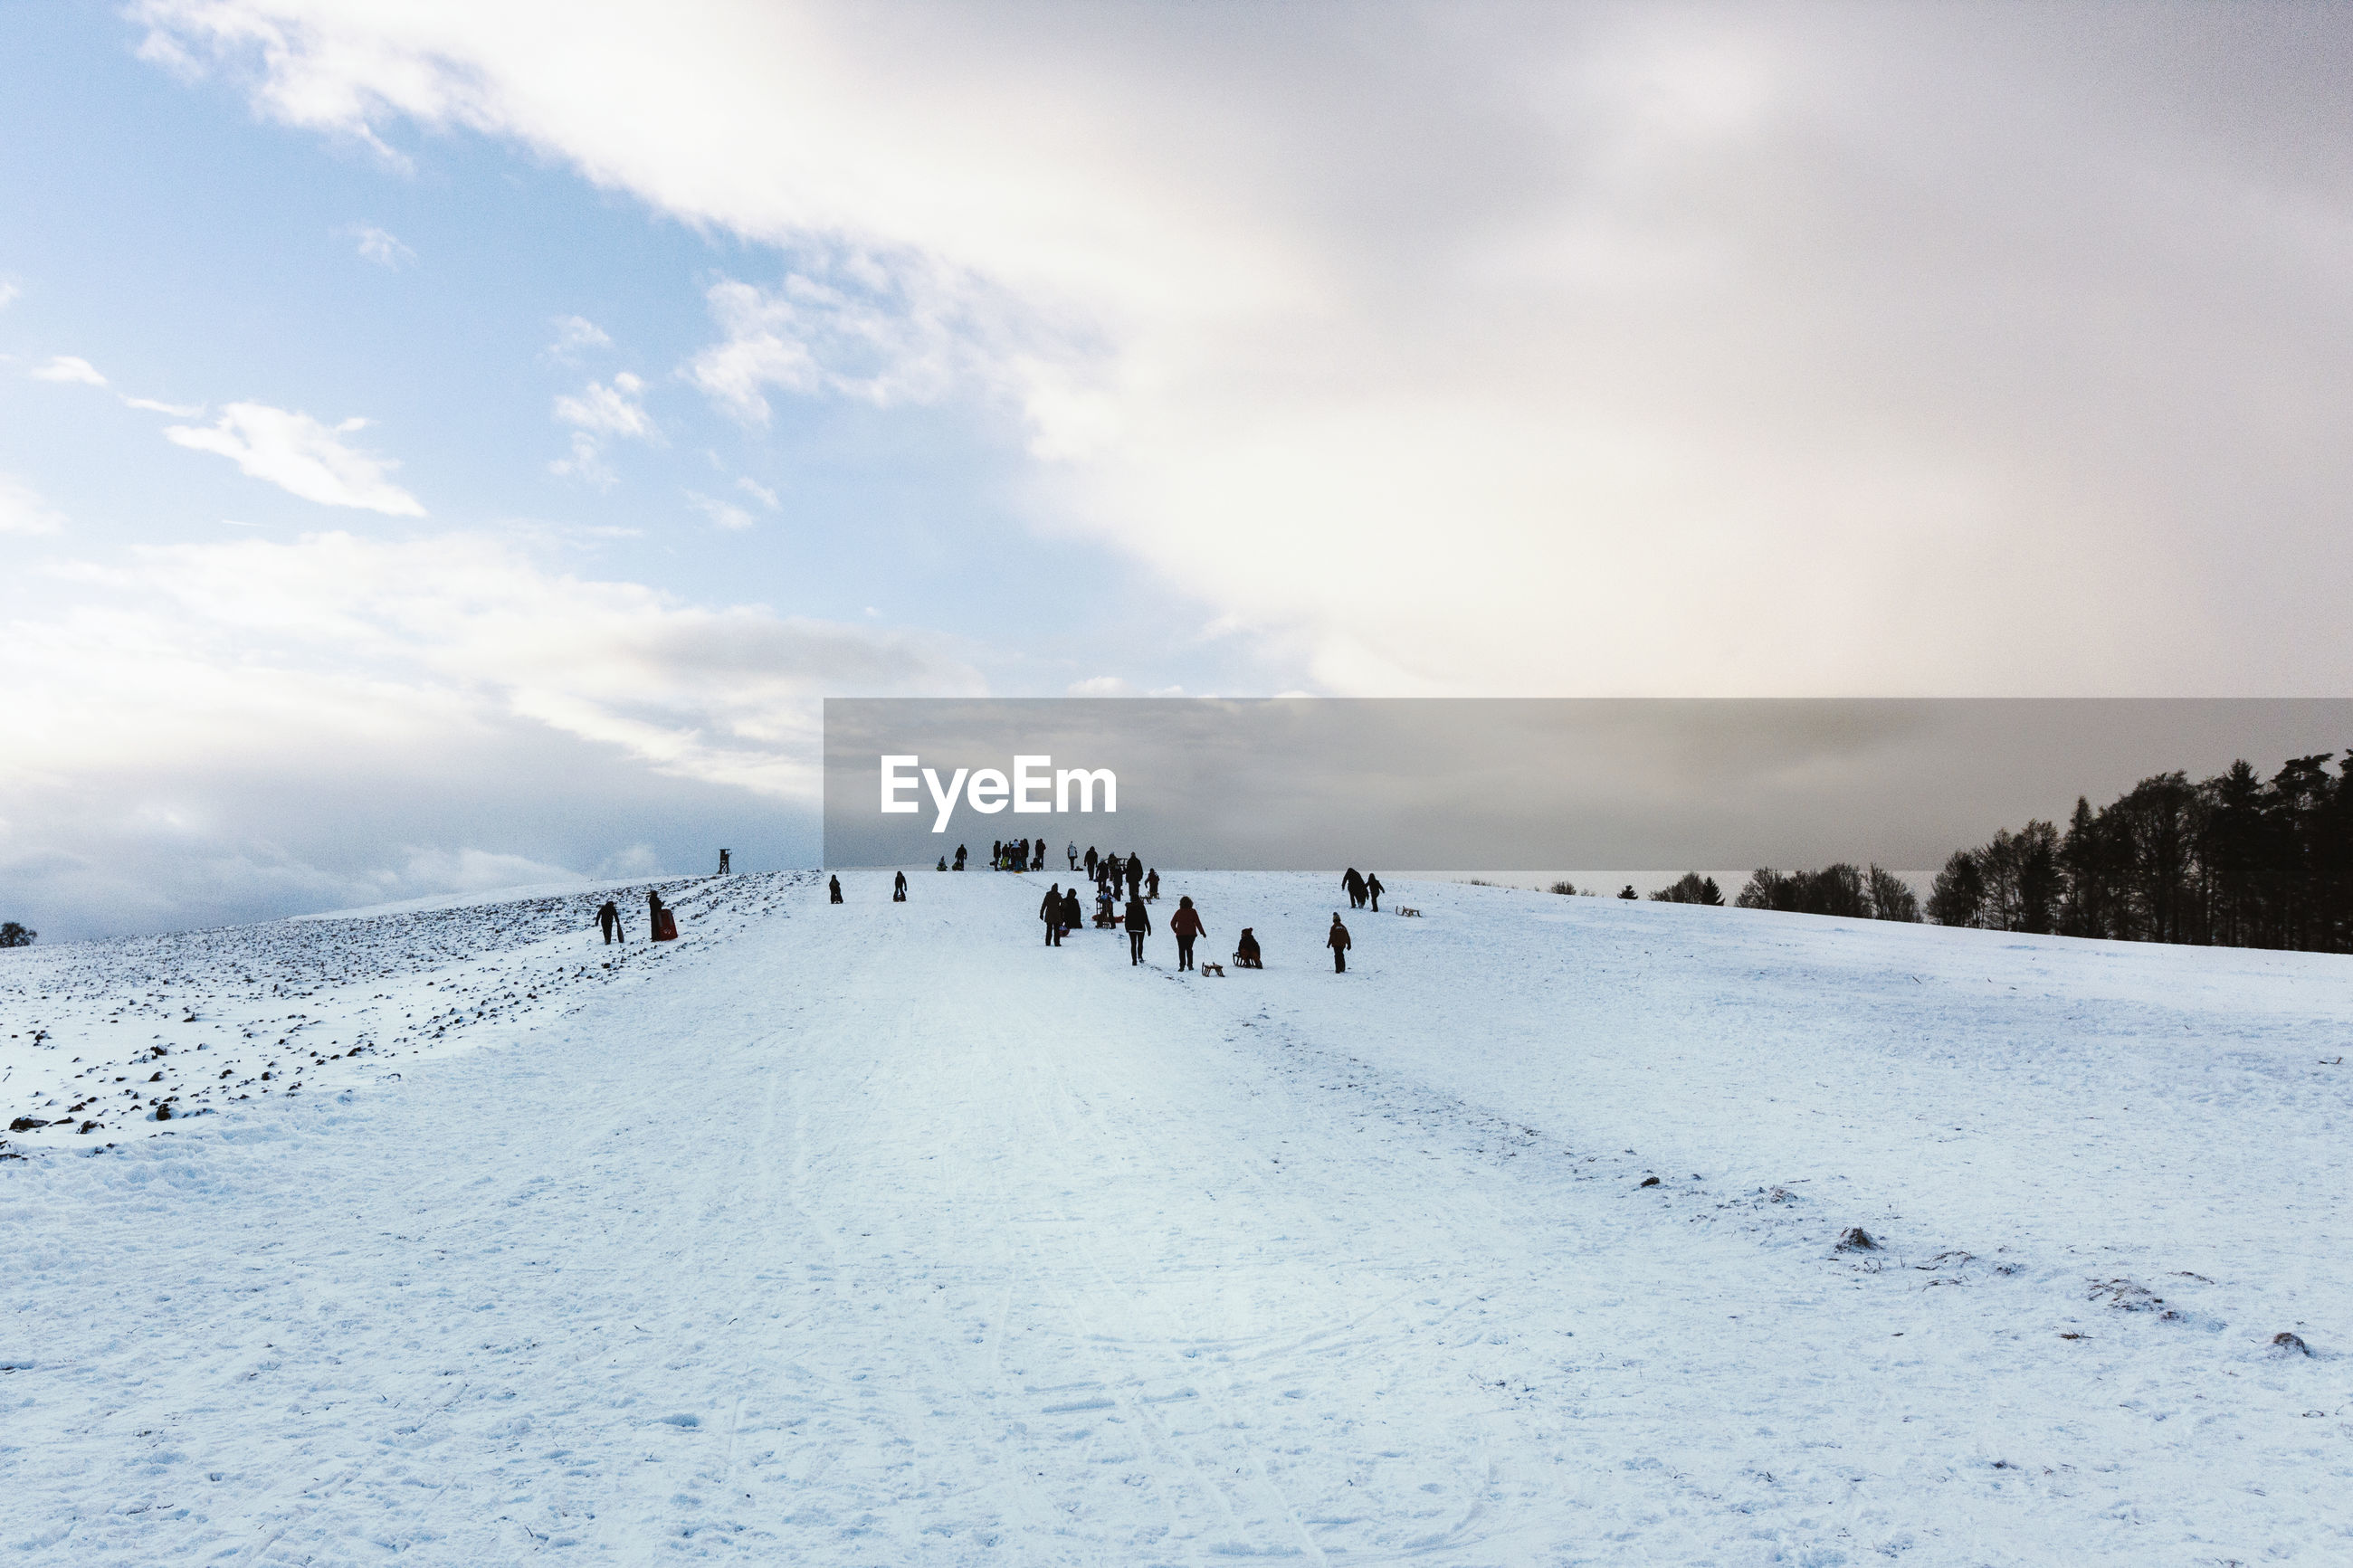 People on snowy landscape against sky during winter